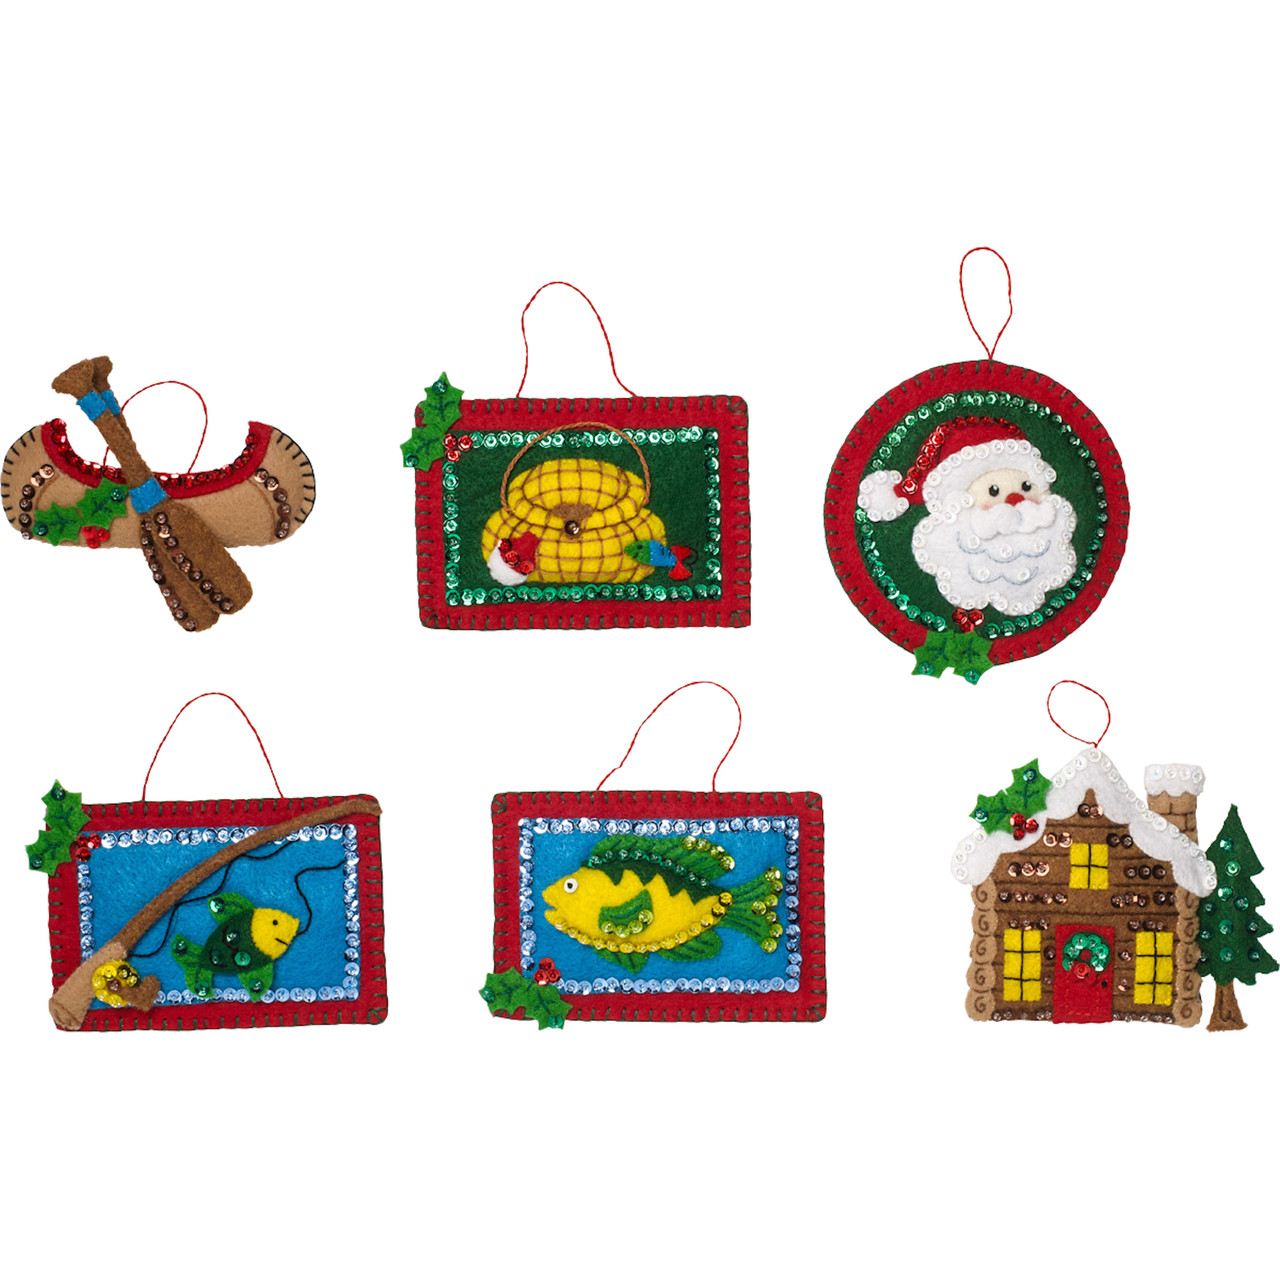 Plaid / Bucilla -  Lodge Christmas Ornaments